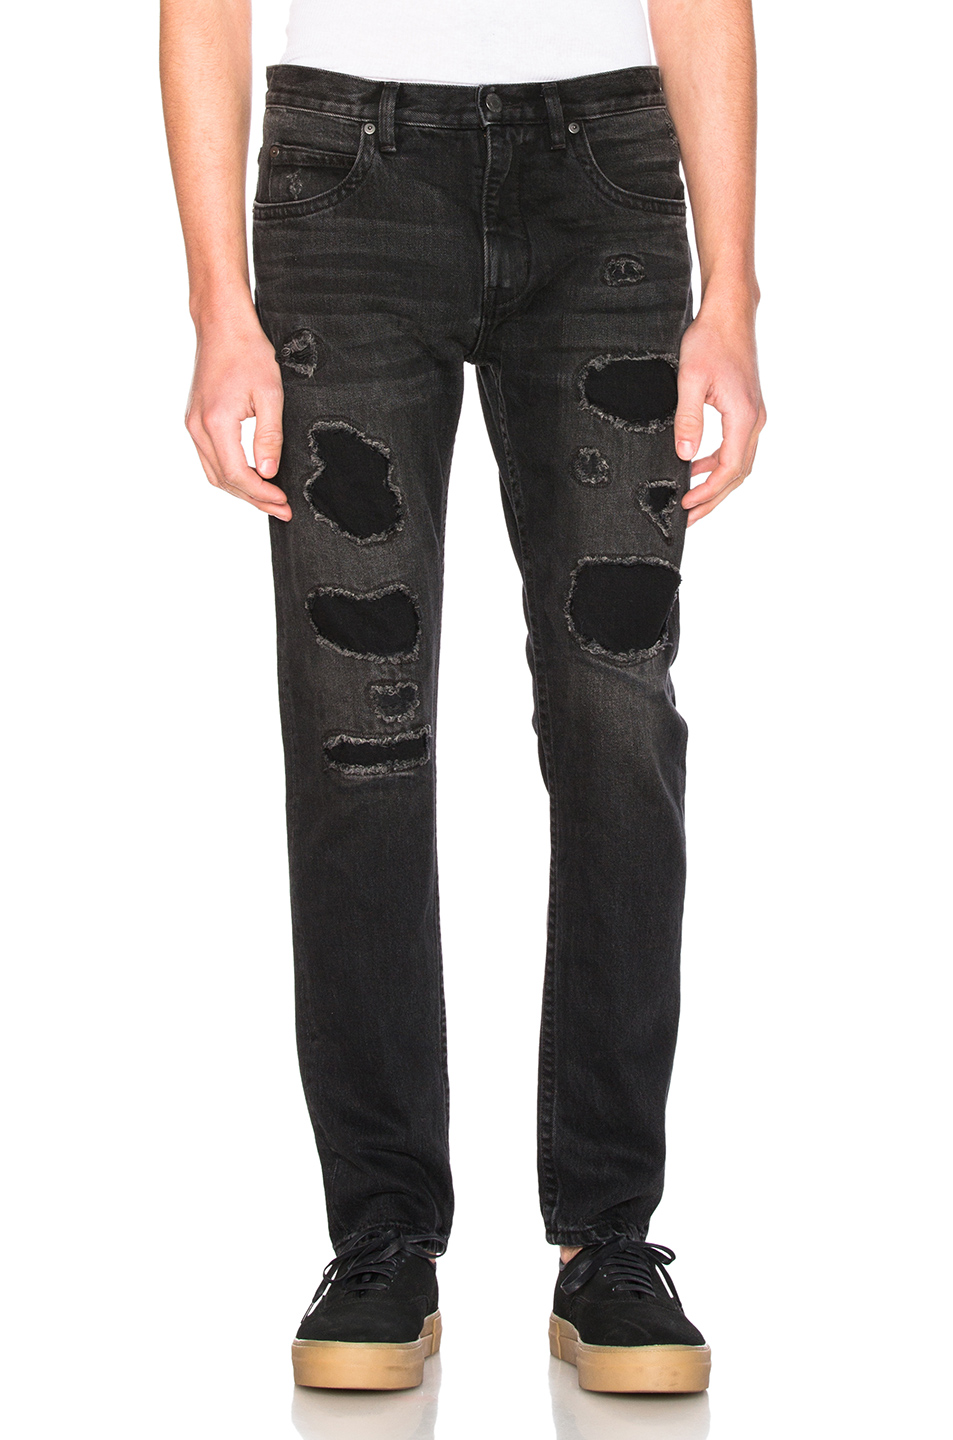 Helmut Lang MR87 Destroy Jeans in Black